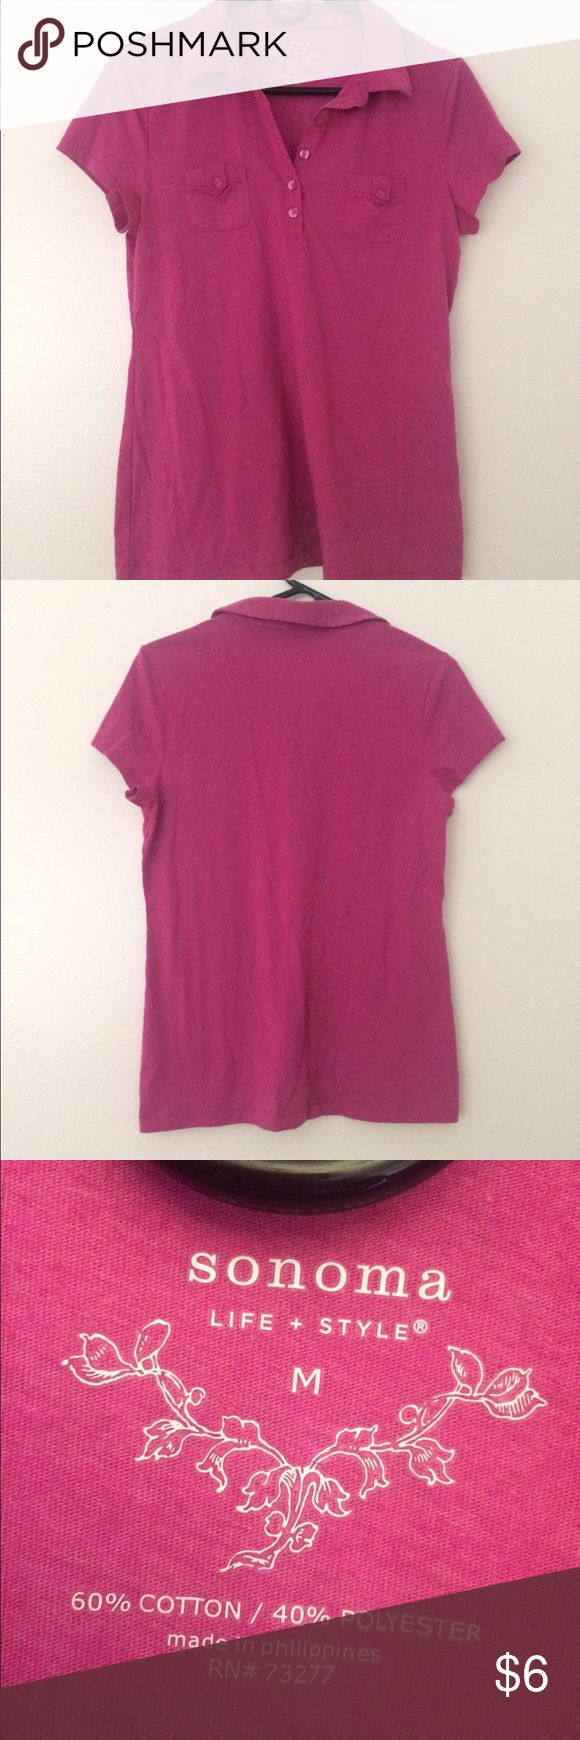 Sonoma pink short sleeve collar shirt. Used once. Sonoma pink short sleeve collar shirt. 60% cotton/ 40% polyester.  Shirt is a soft material, & only problem is the little fuzzy thing in the back of the shirt but it's not noticeable. Sonoma Tops